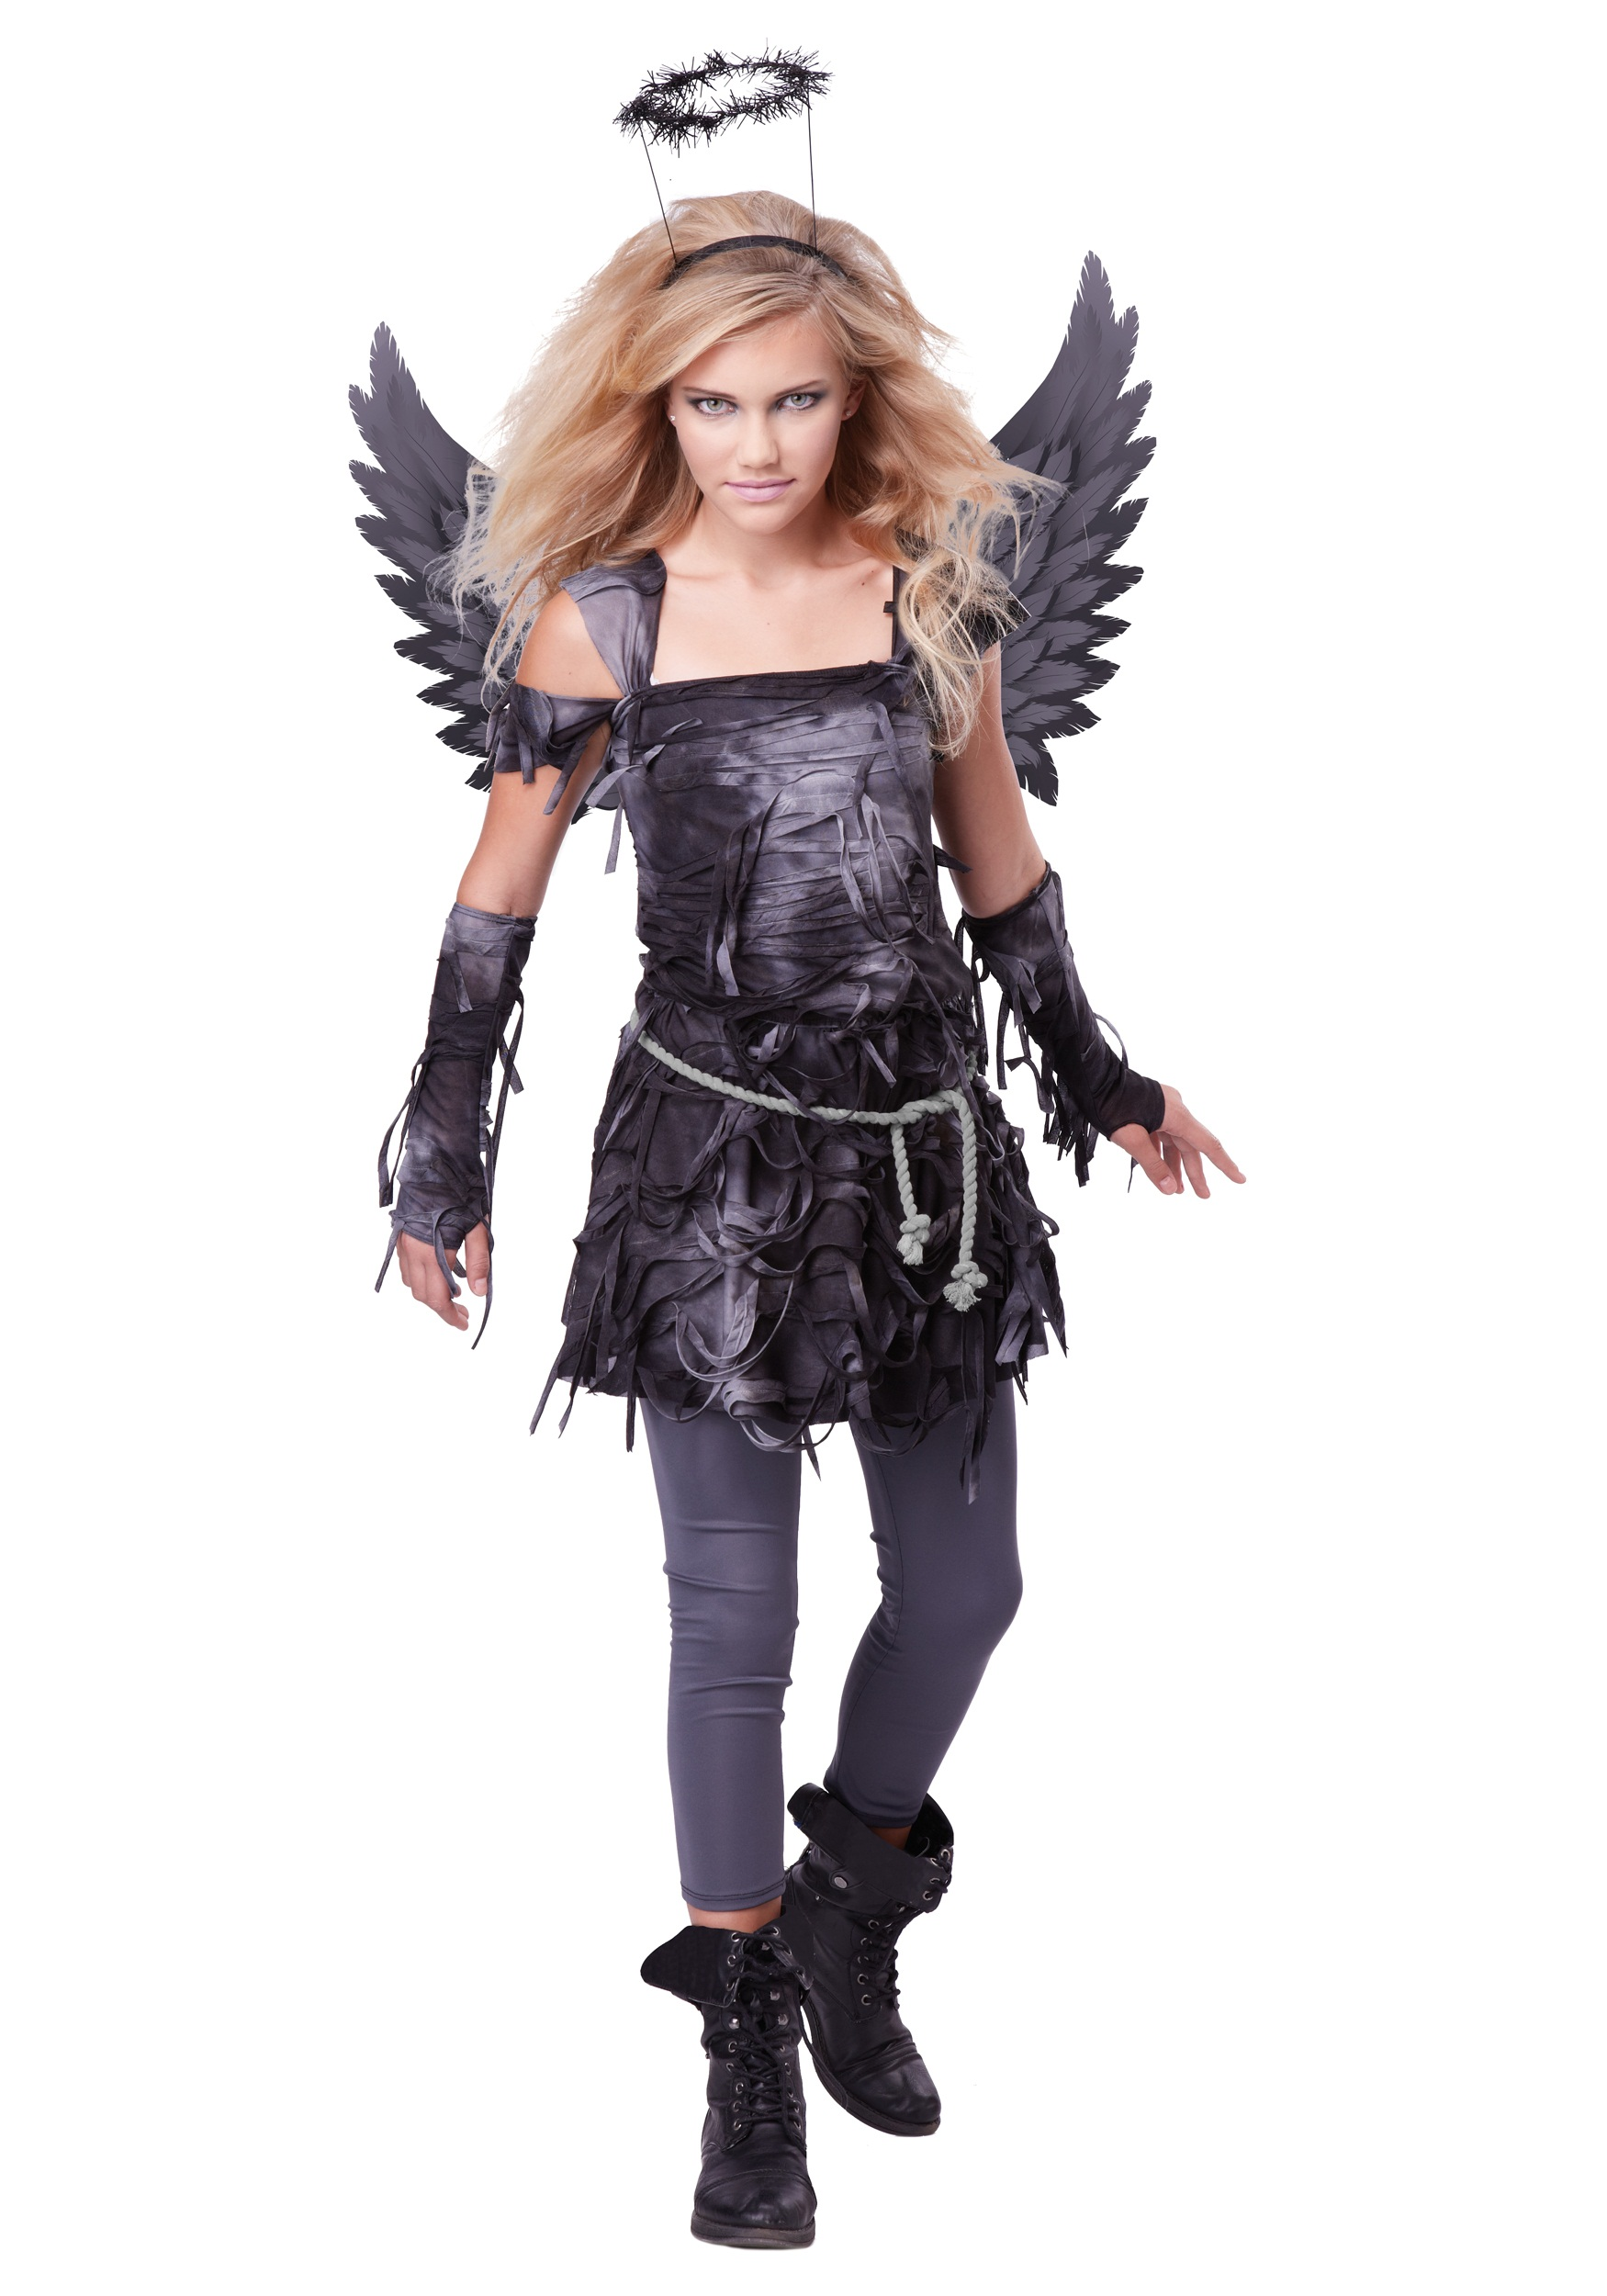 Teen Spooky Angel Girls Costume  sc 1 st  Fun.com & Teen Spooky Angel Costume for Girls